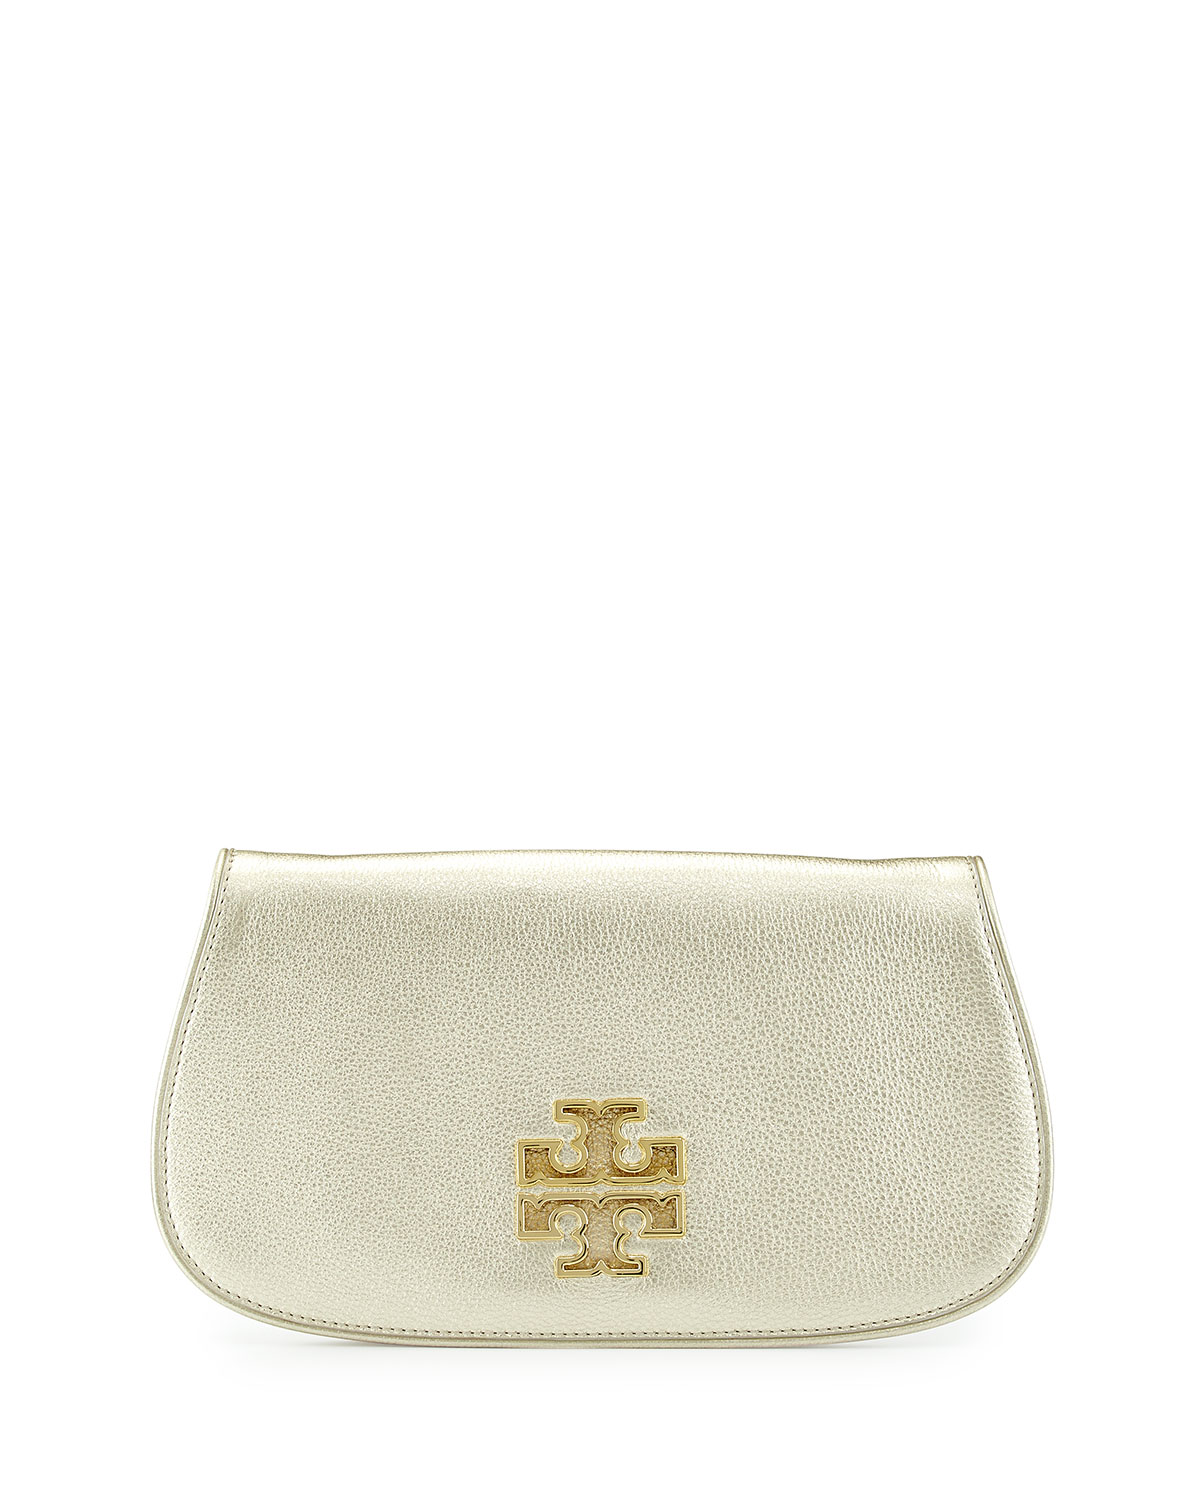 7c29395d30 Tory Burch Britten Metallic Saffiano Leather Clutch Bag, Gold ...